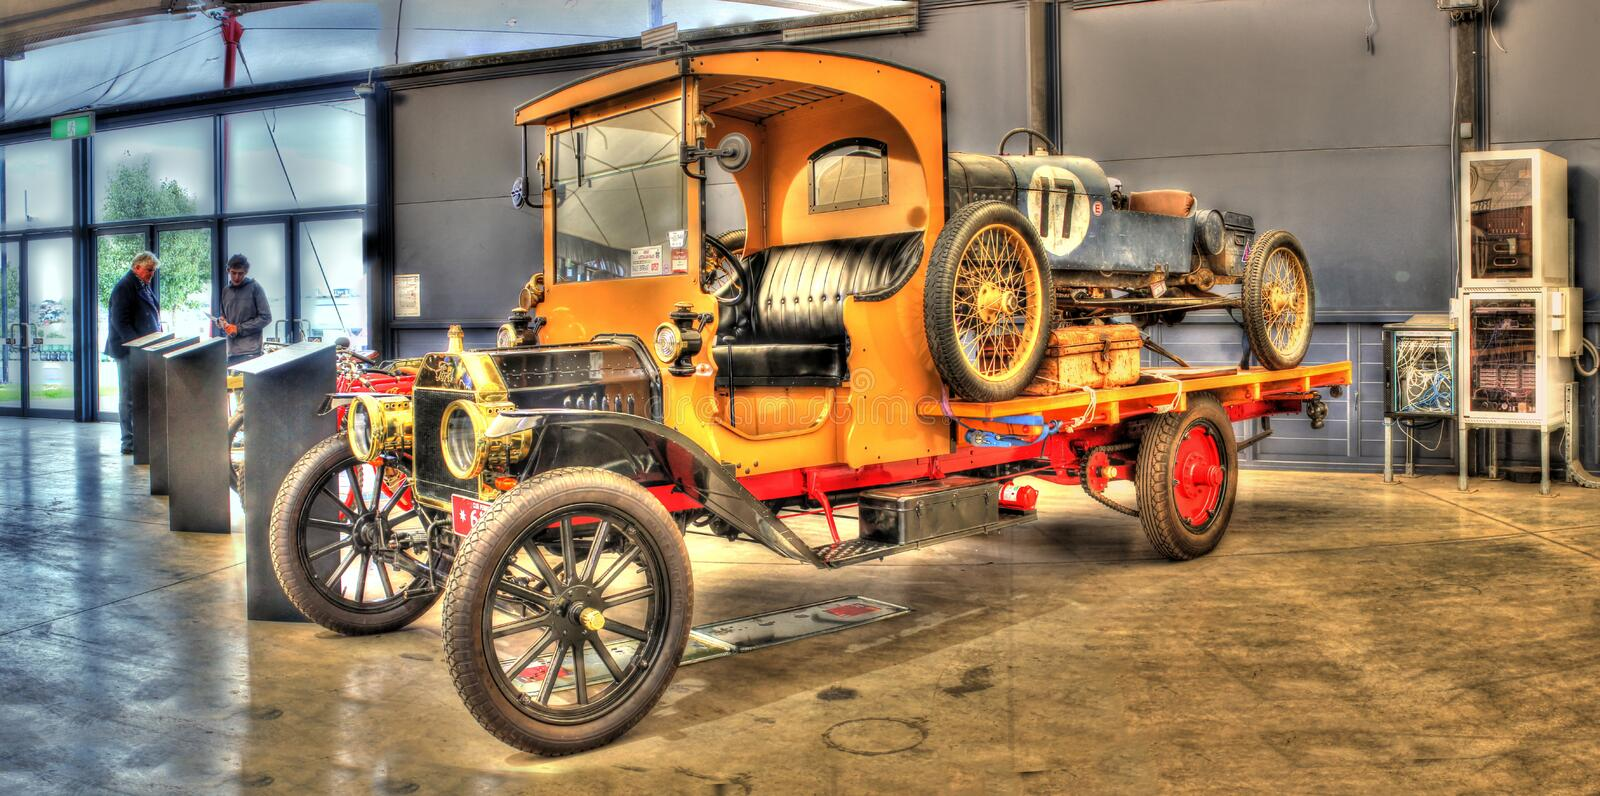 Vintage truck and race car royalty free stock images